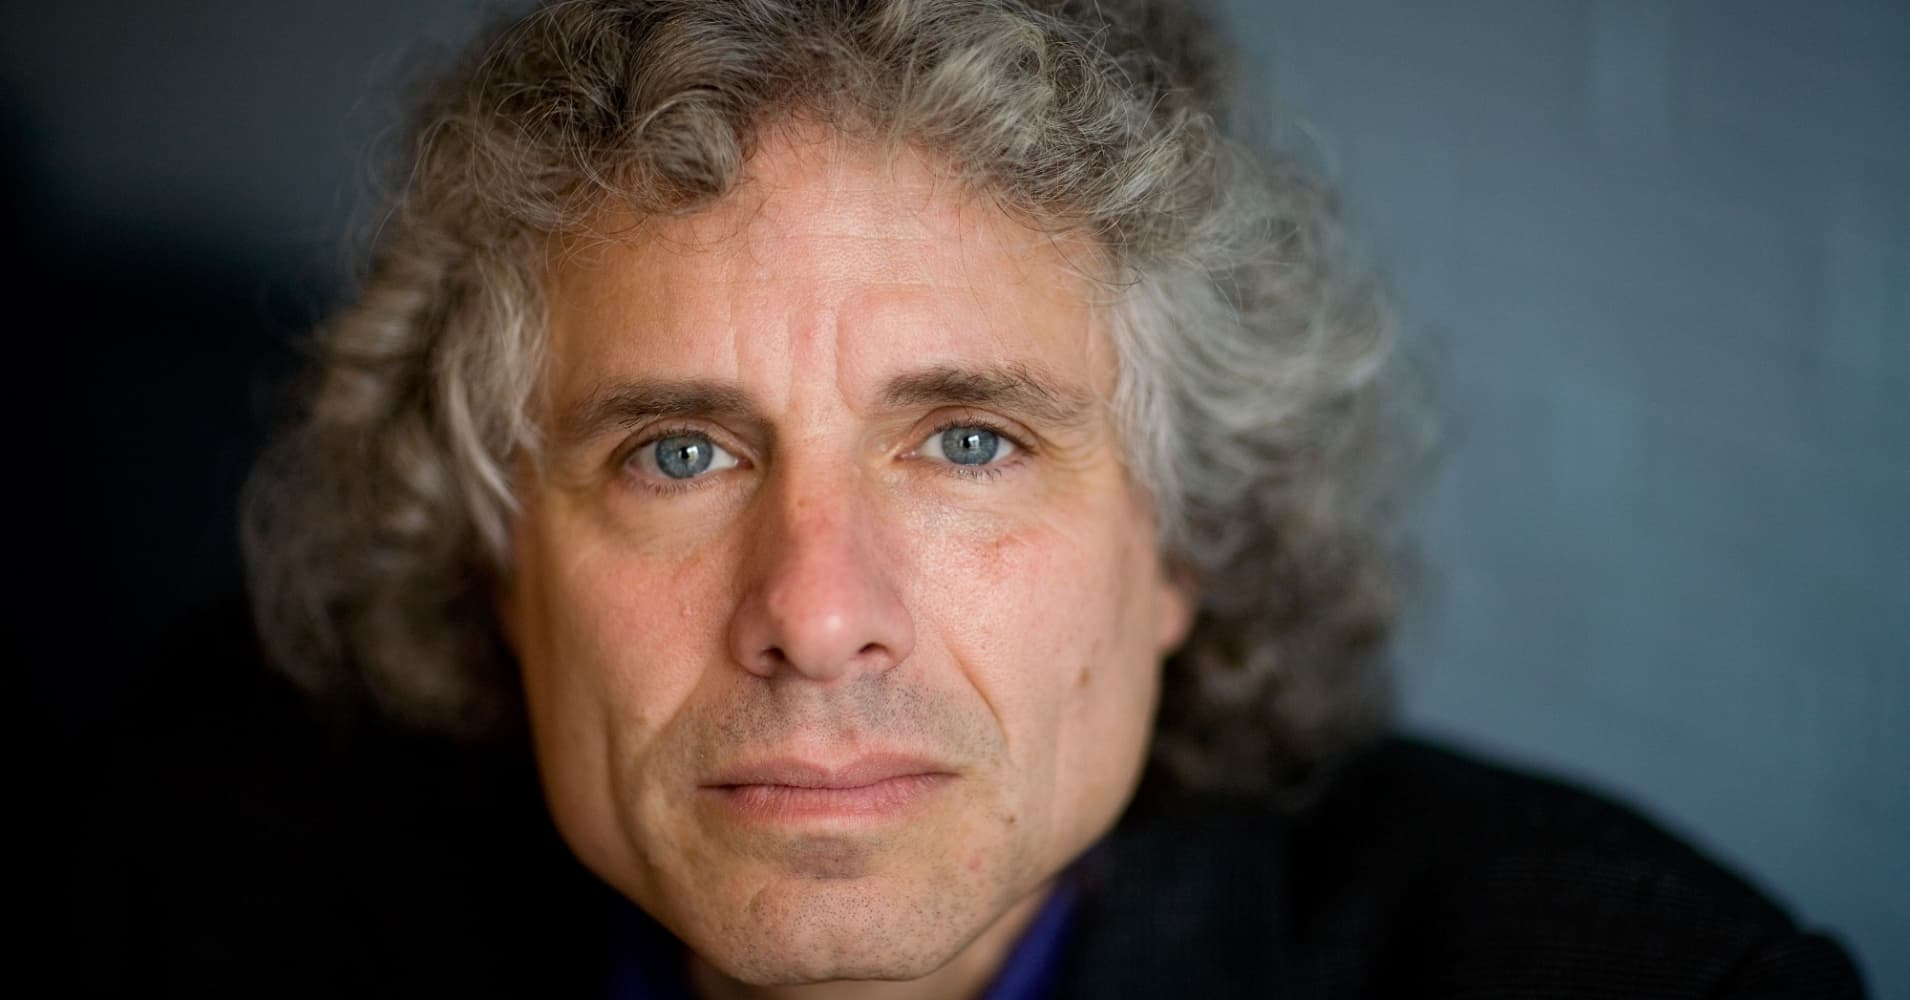 steven pinker Belief in human progress has always depended on a kind of provisional faith philosophers of the enlightenment imagined that it was possible to break the chains of oppression and bring about the .